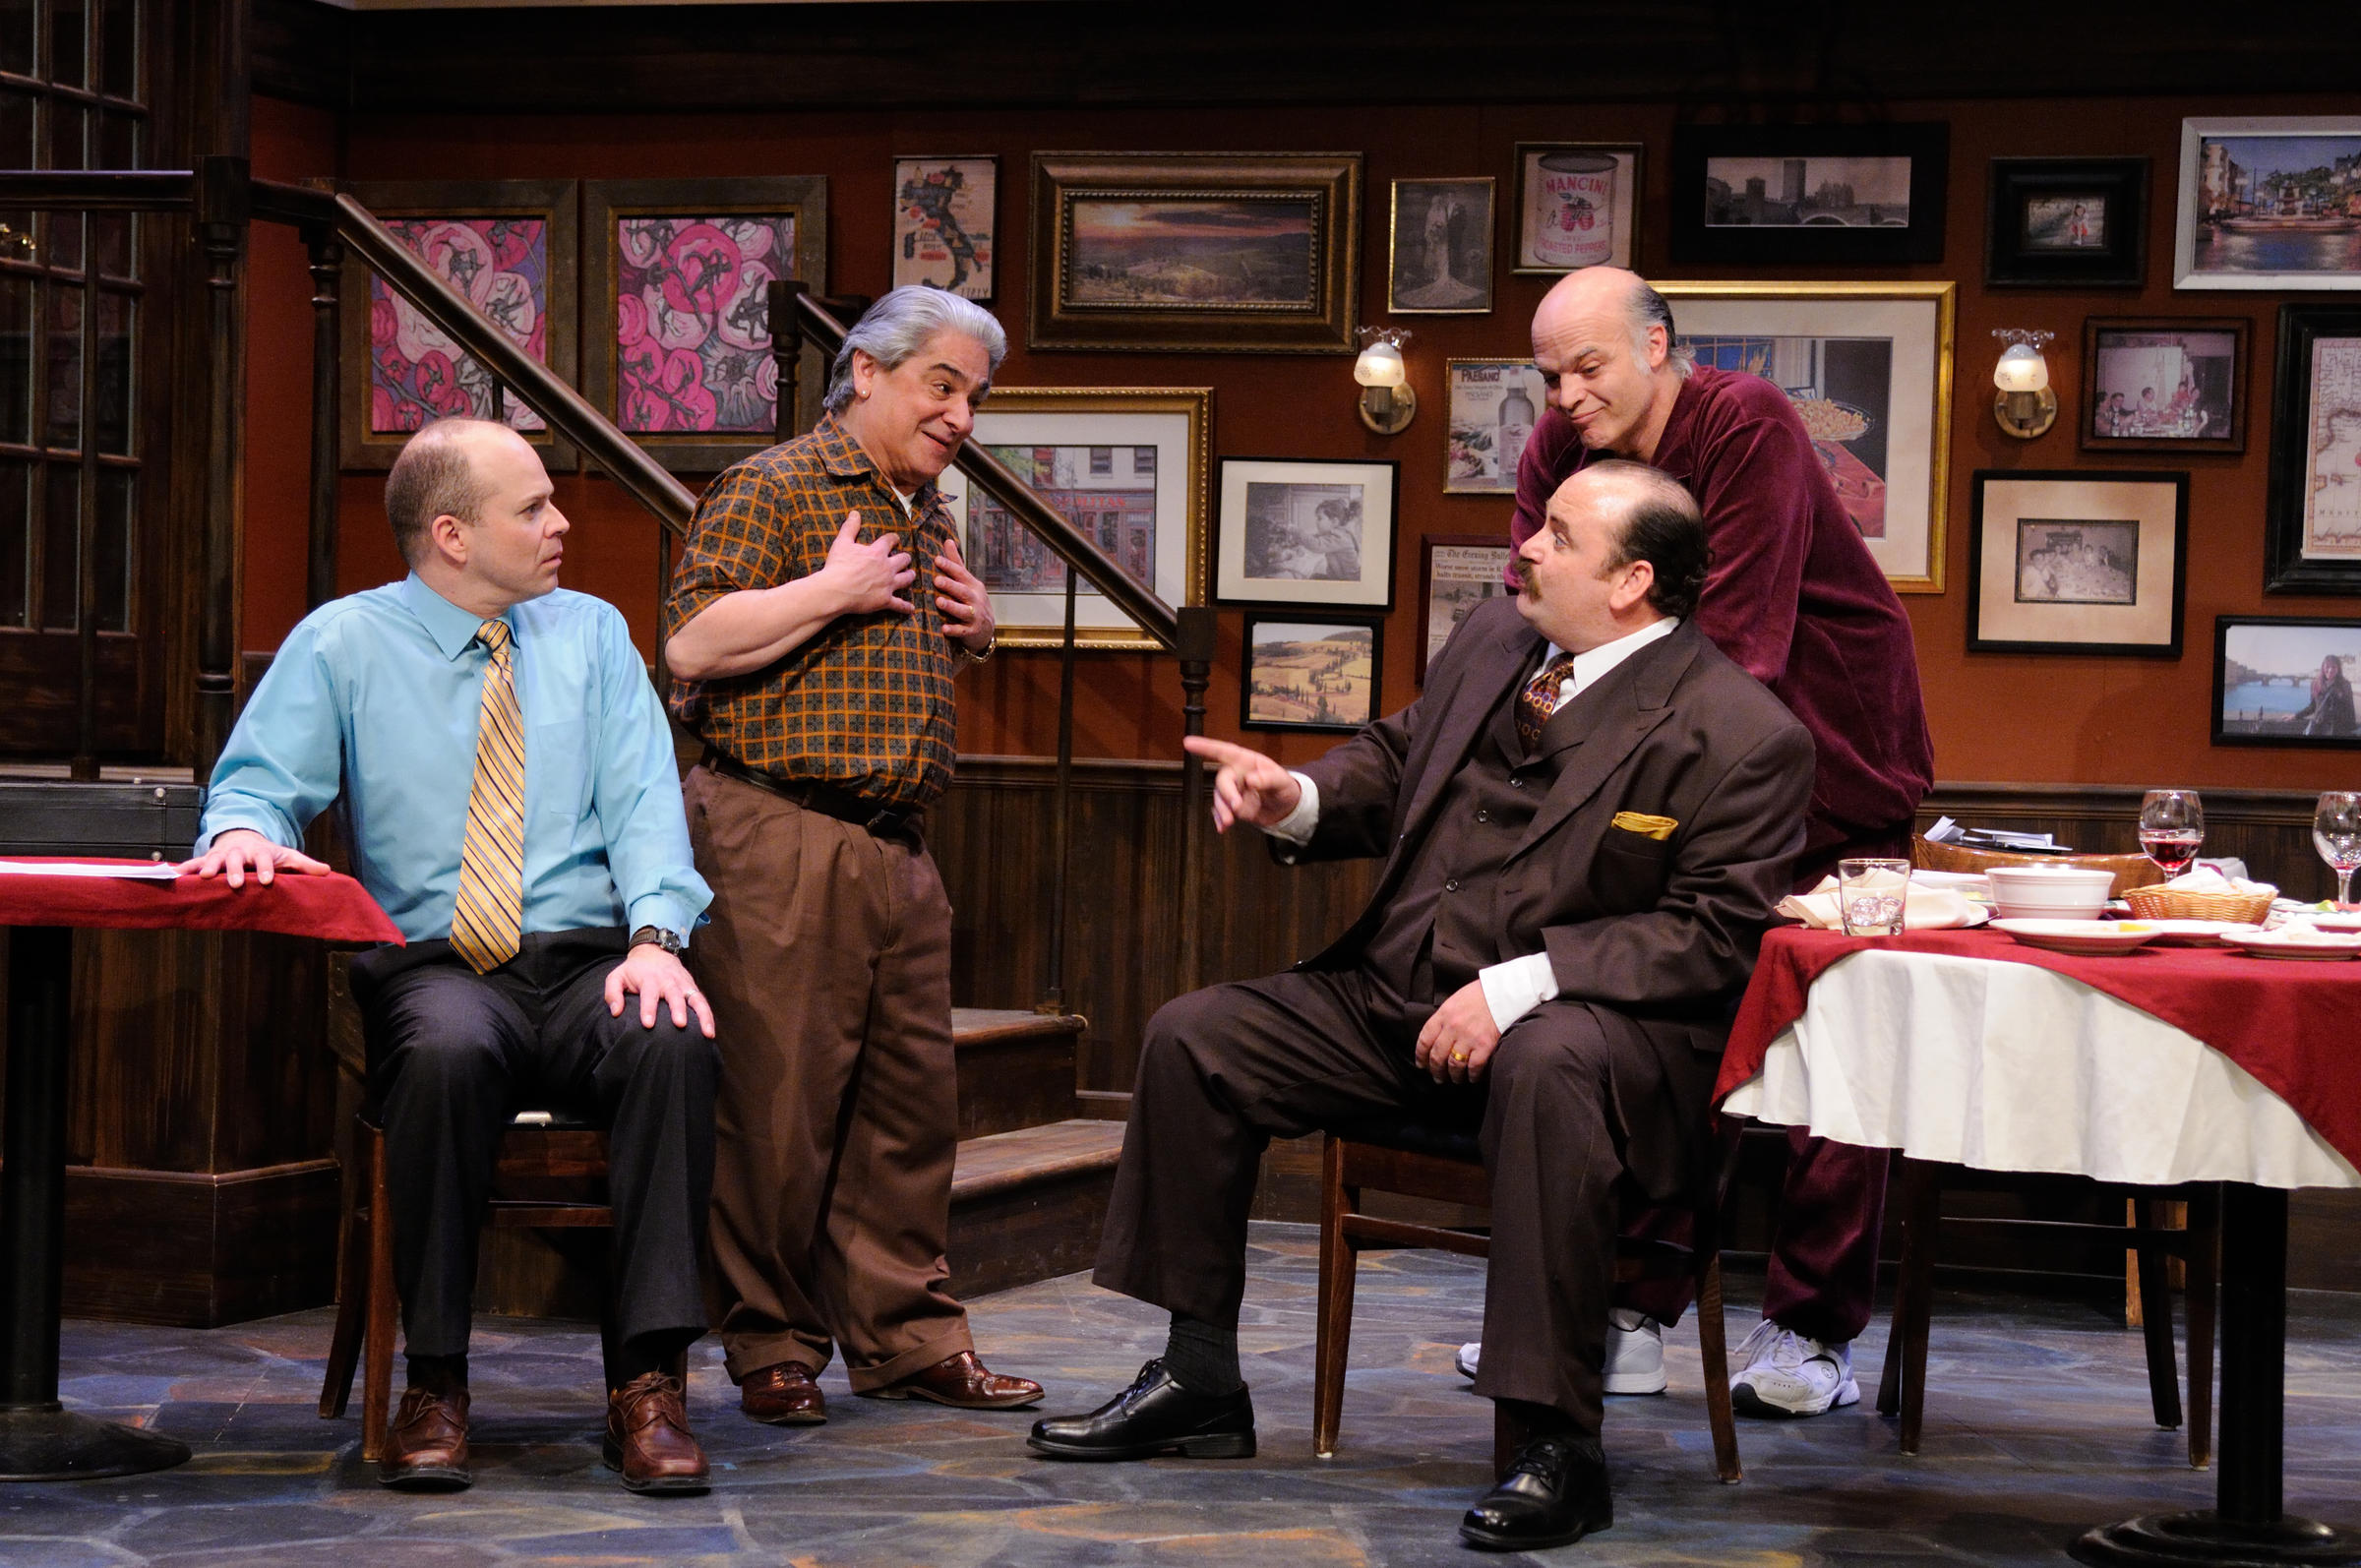 Review mob farce 39 breaking legs 39 works in spite of itself for Farcical comedy plays